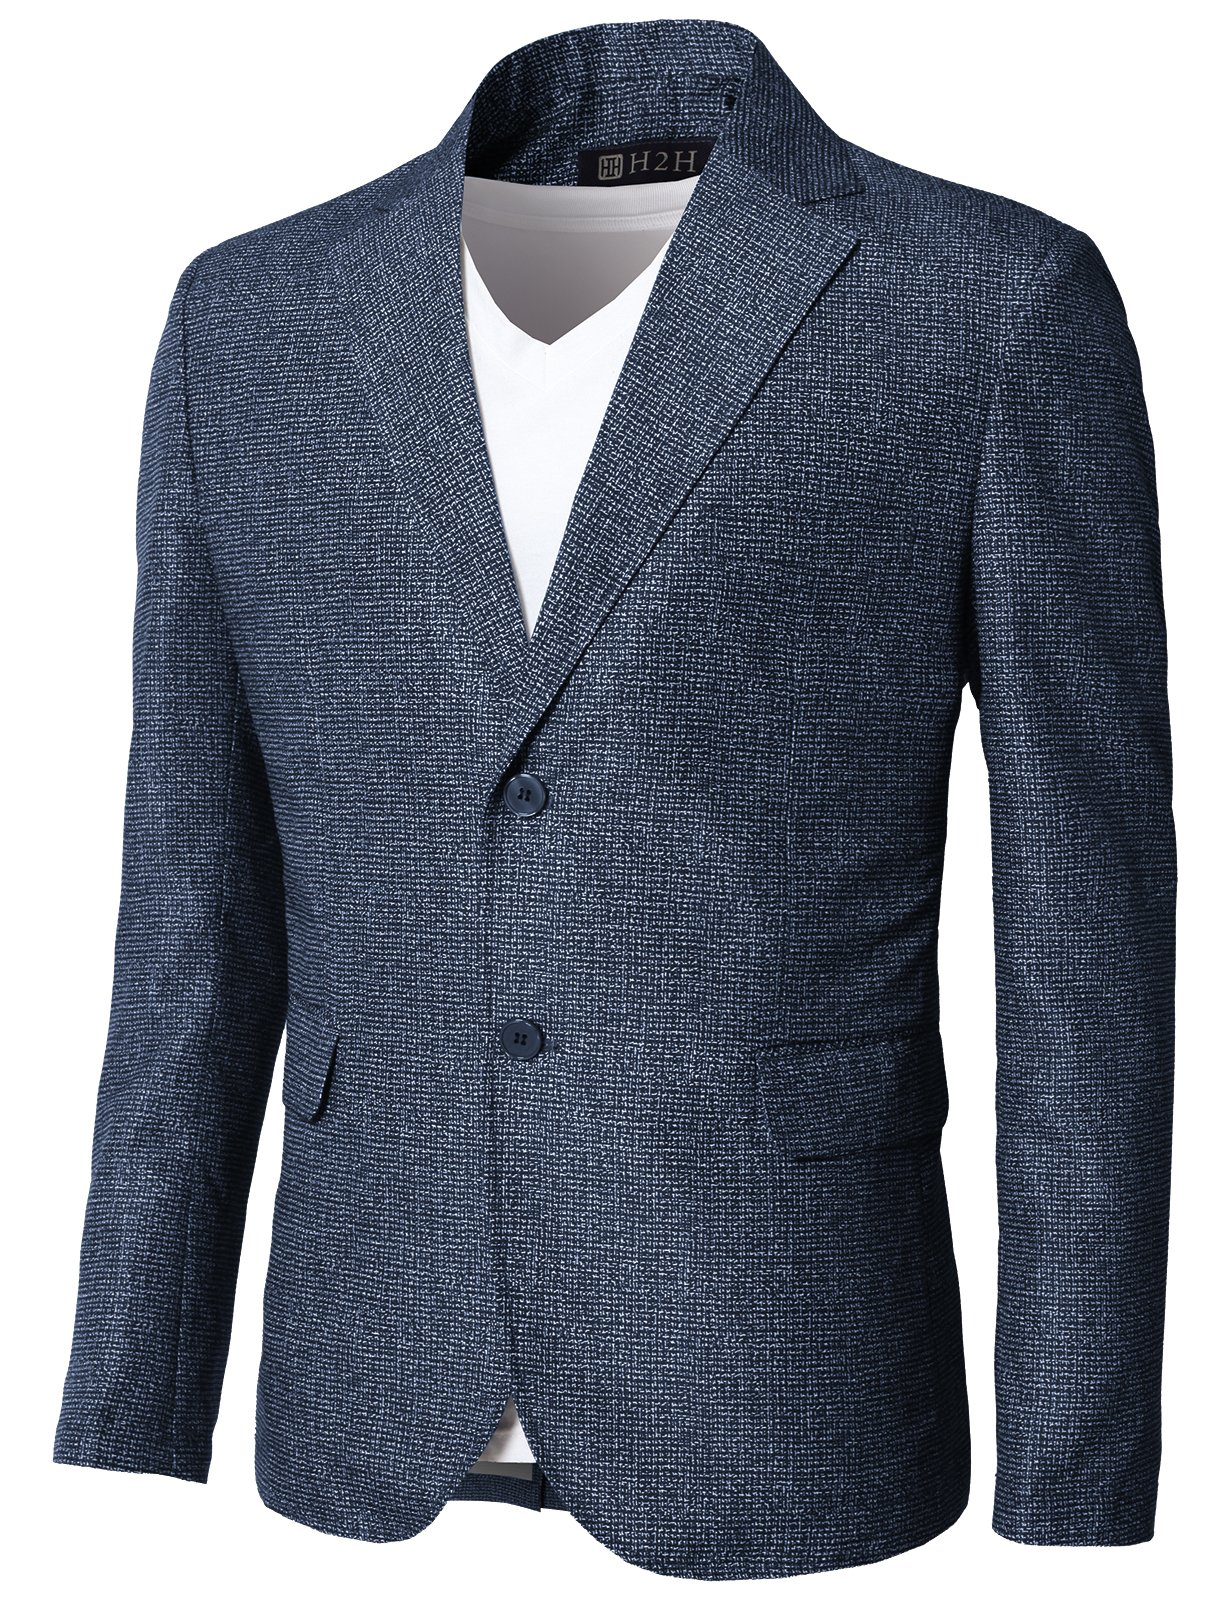 H2H Men's Travel Stretch Slim Fit 2-Button Side Vent Solid Blazer Jacket Steelblue US L/Asia XL (KMOBL0121)